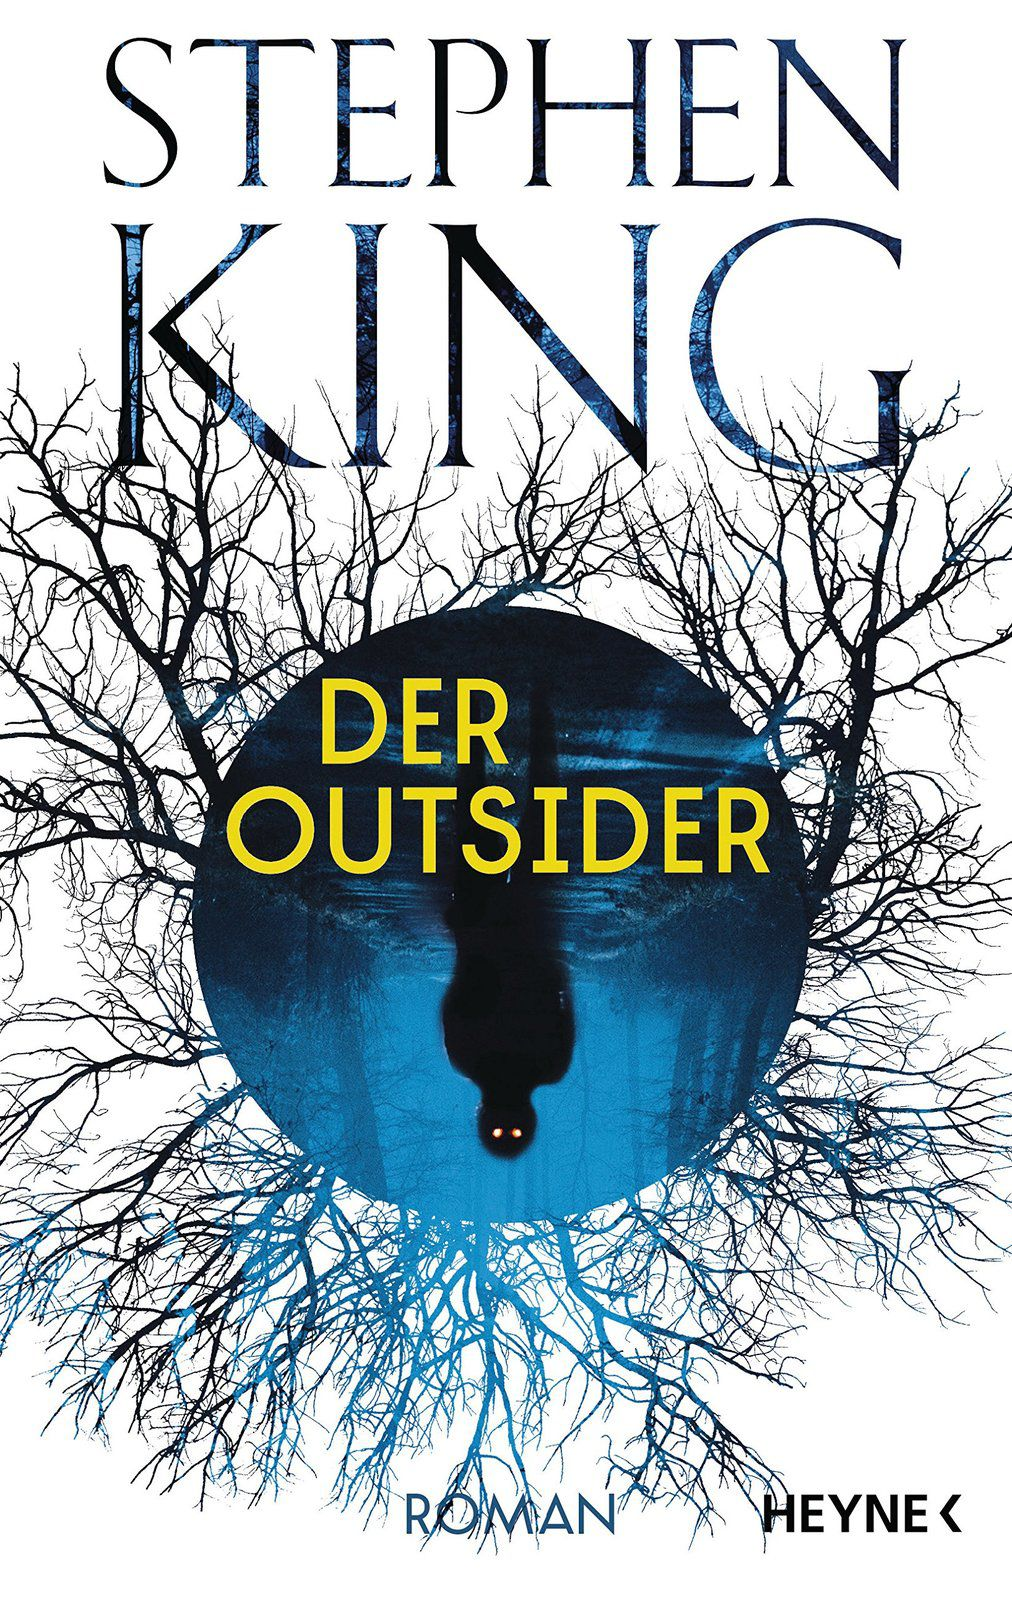 Stephen King L'Outsider review